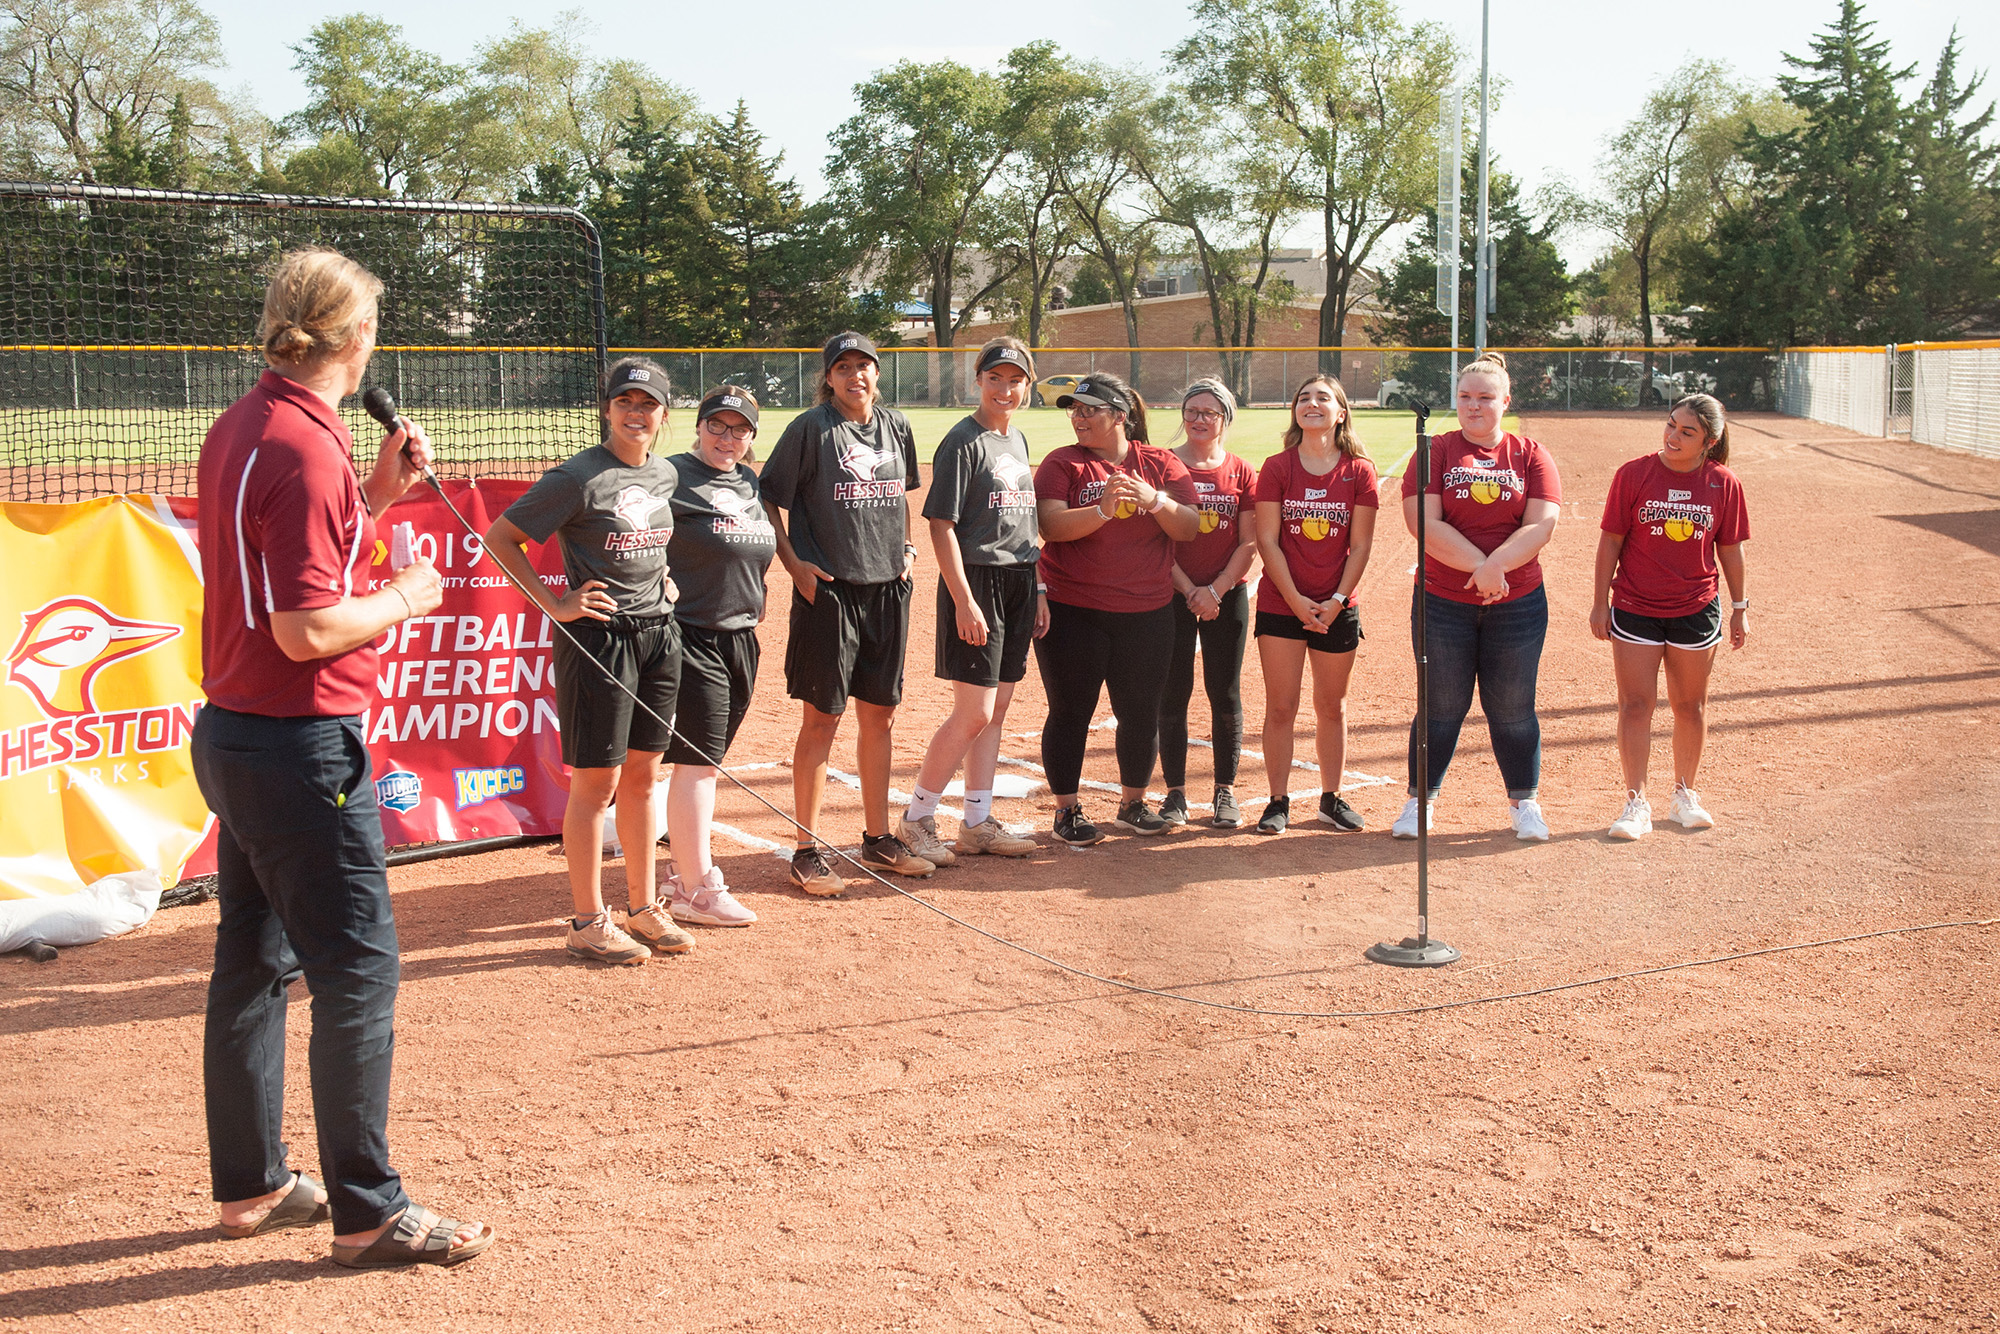 Former Coach Andrew Sharp introduces members of the 2019 Kansas Jayhawk Conference champion Hesston College Larks softball team.